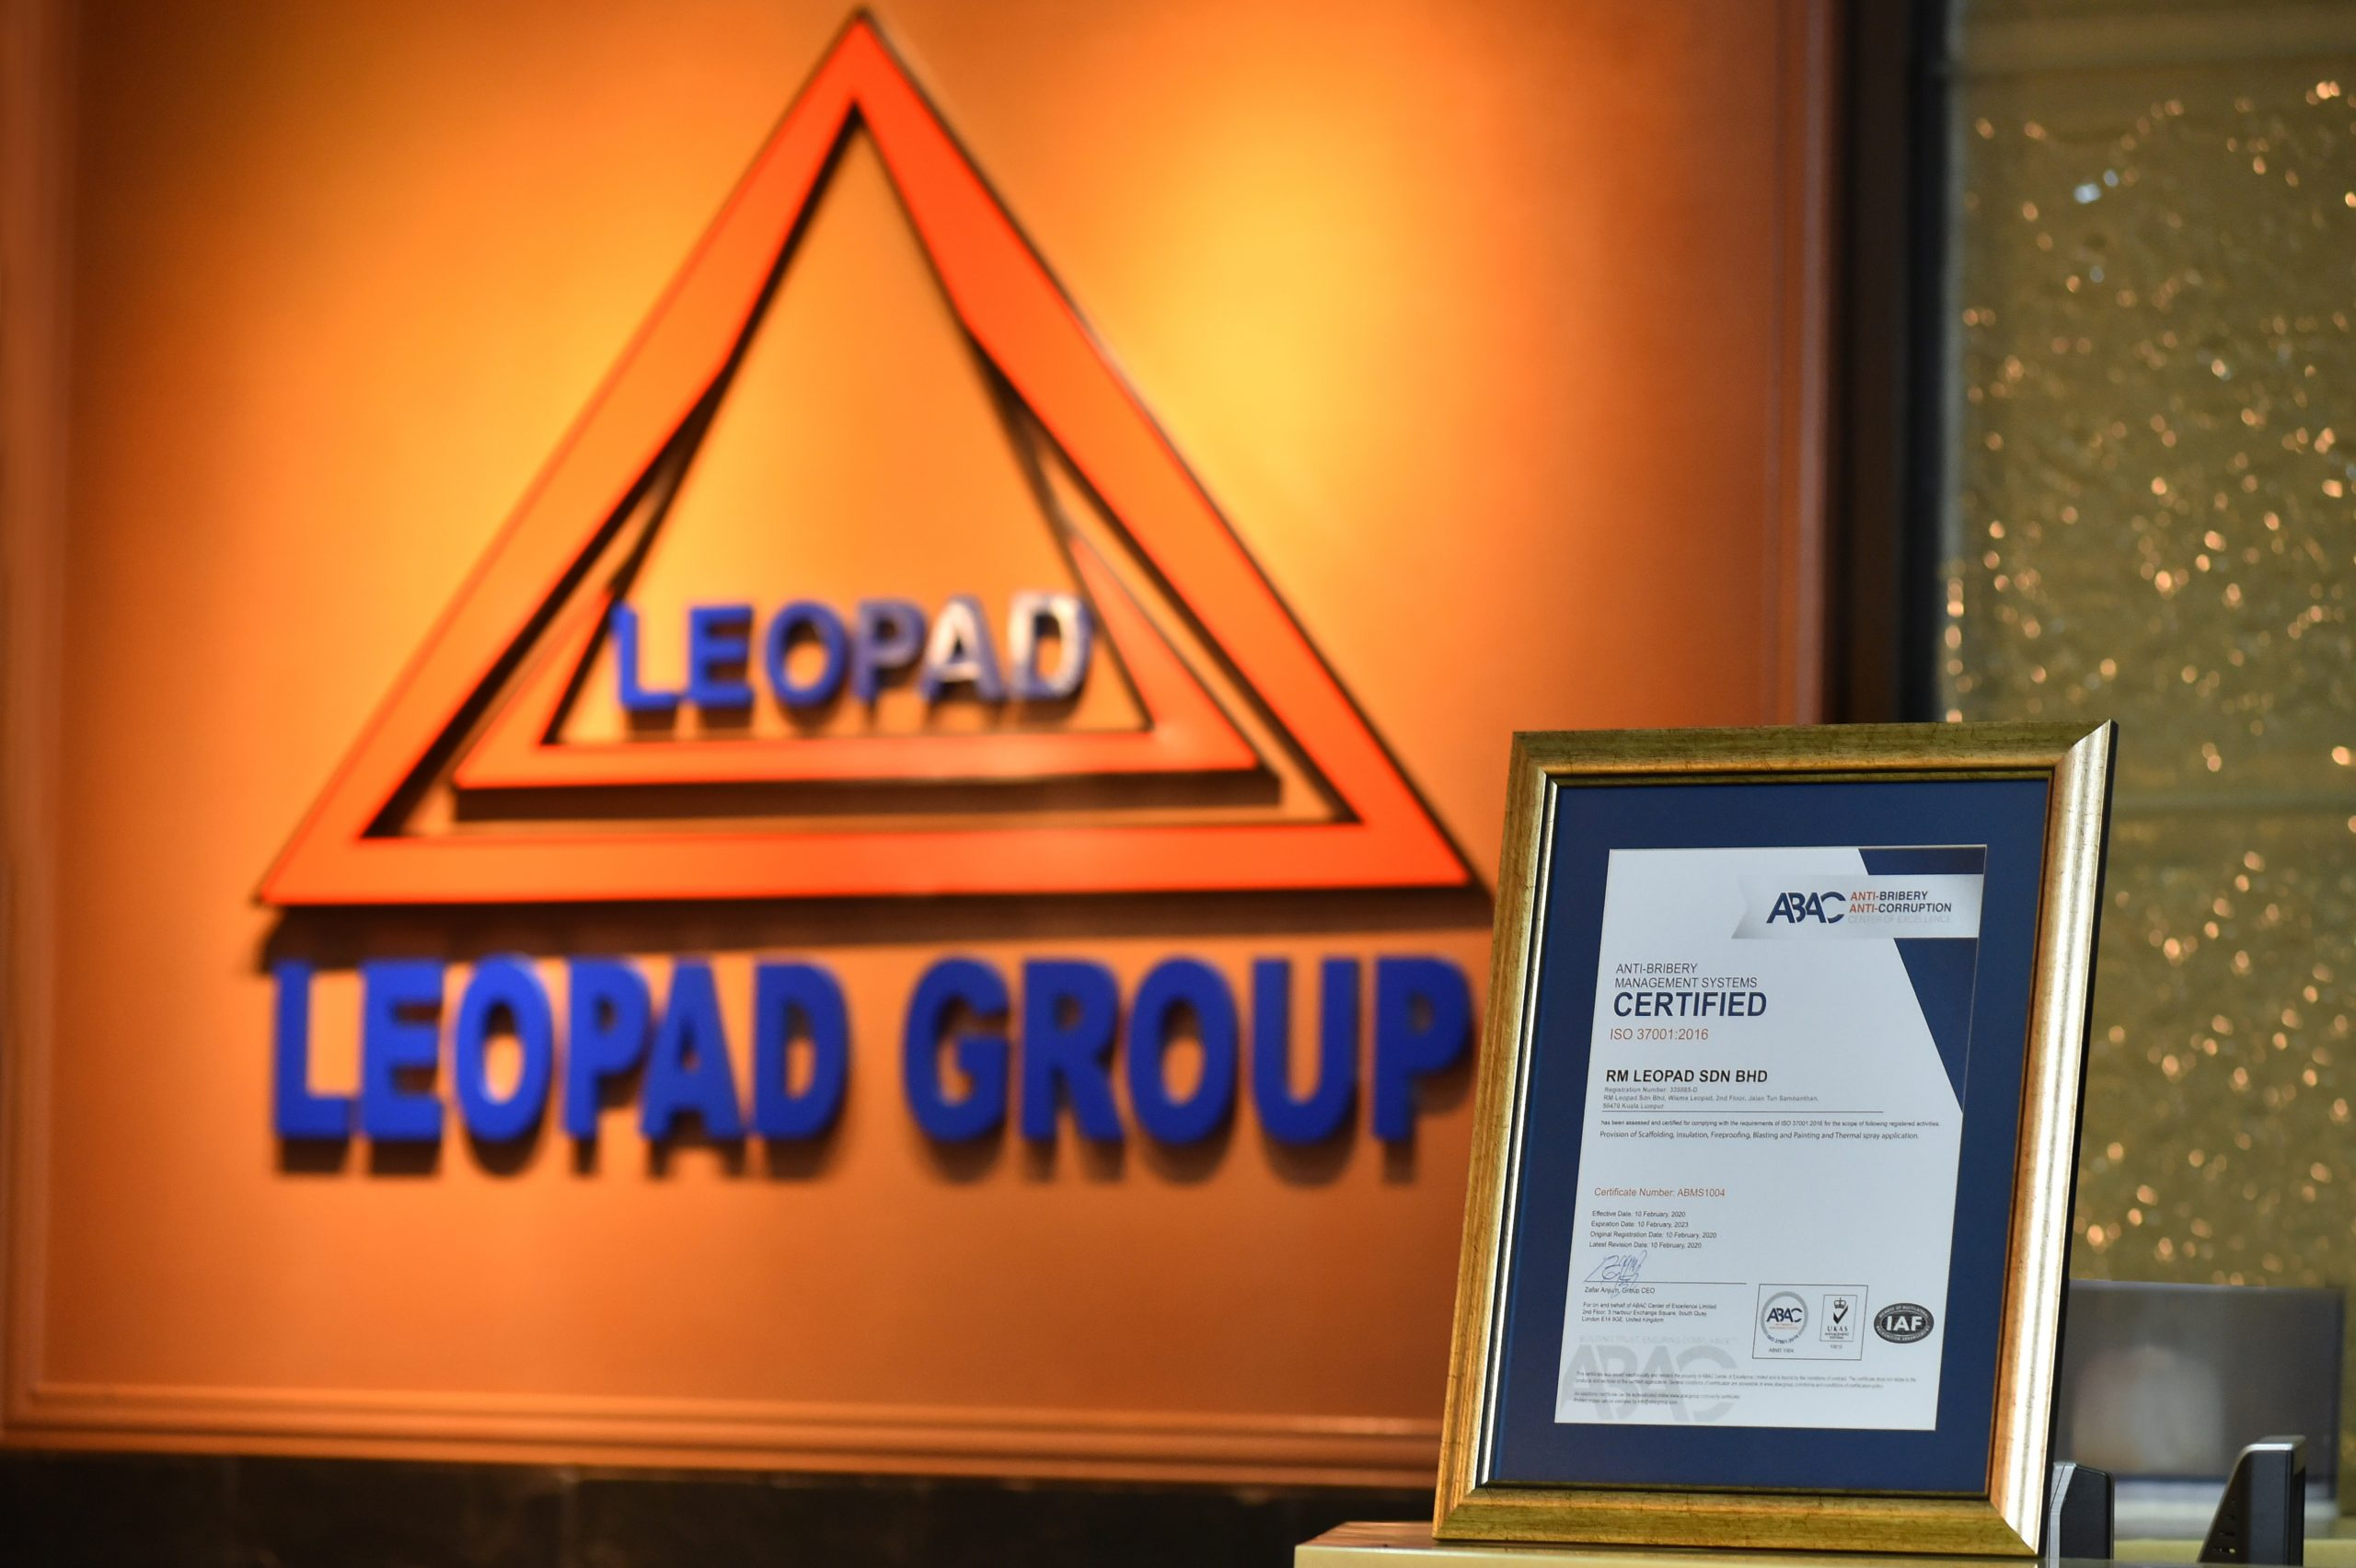 RM Leopad Sdn Bhd awarded with ISO 37001 ABMS certification with ABAC